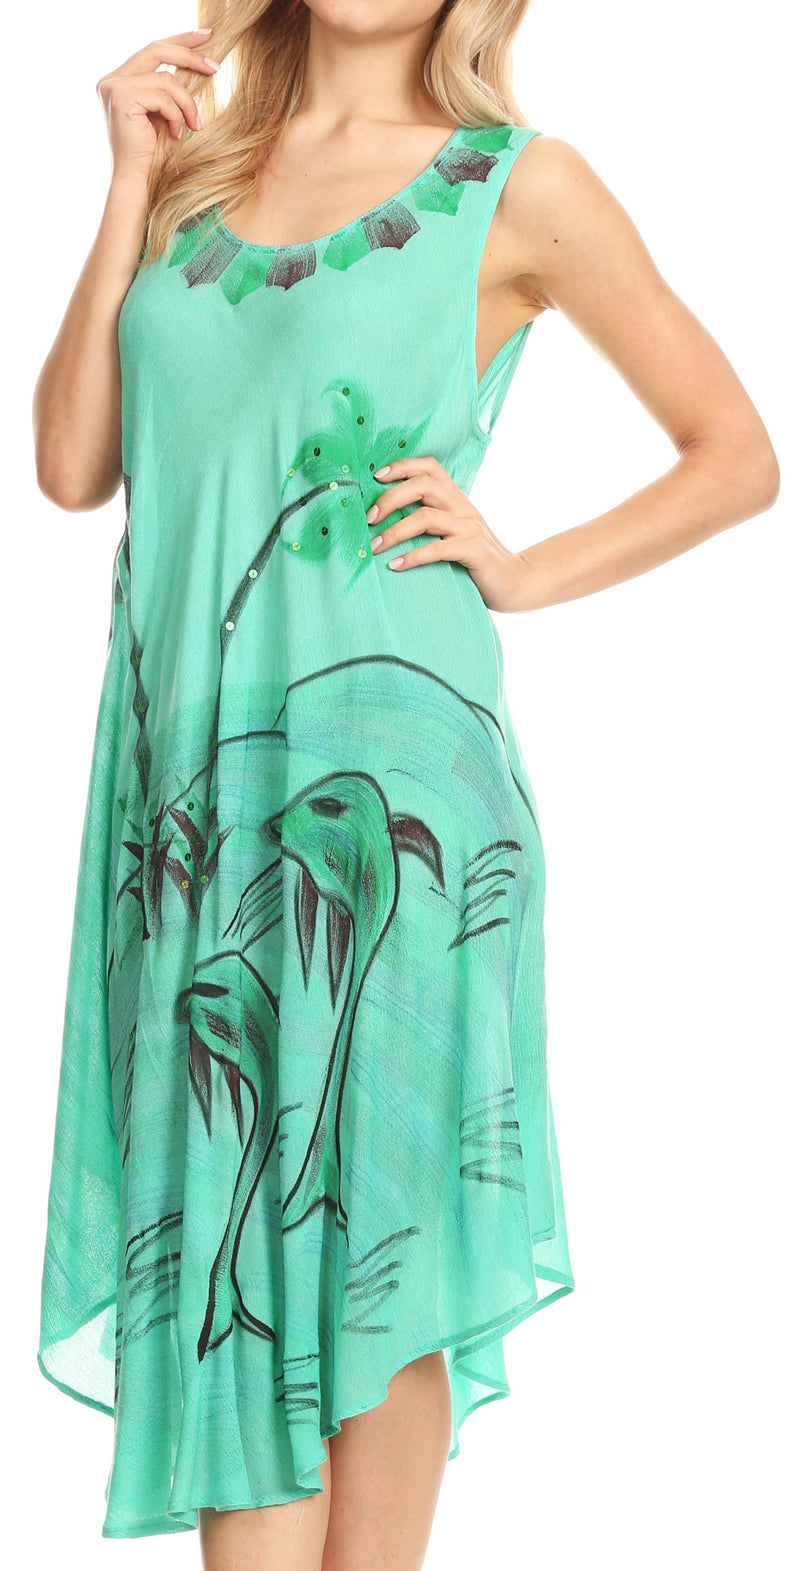 Sakkas Valentina Summer Casual Light Cover-up Caftan Dress with Tropical Print